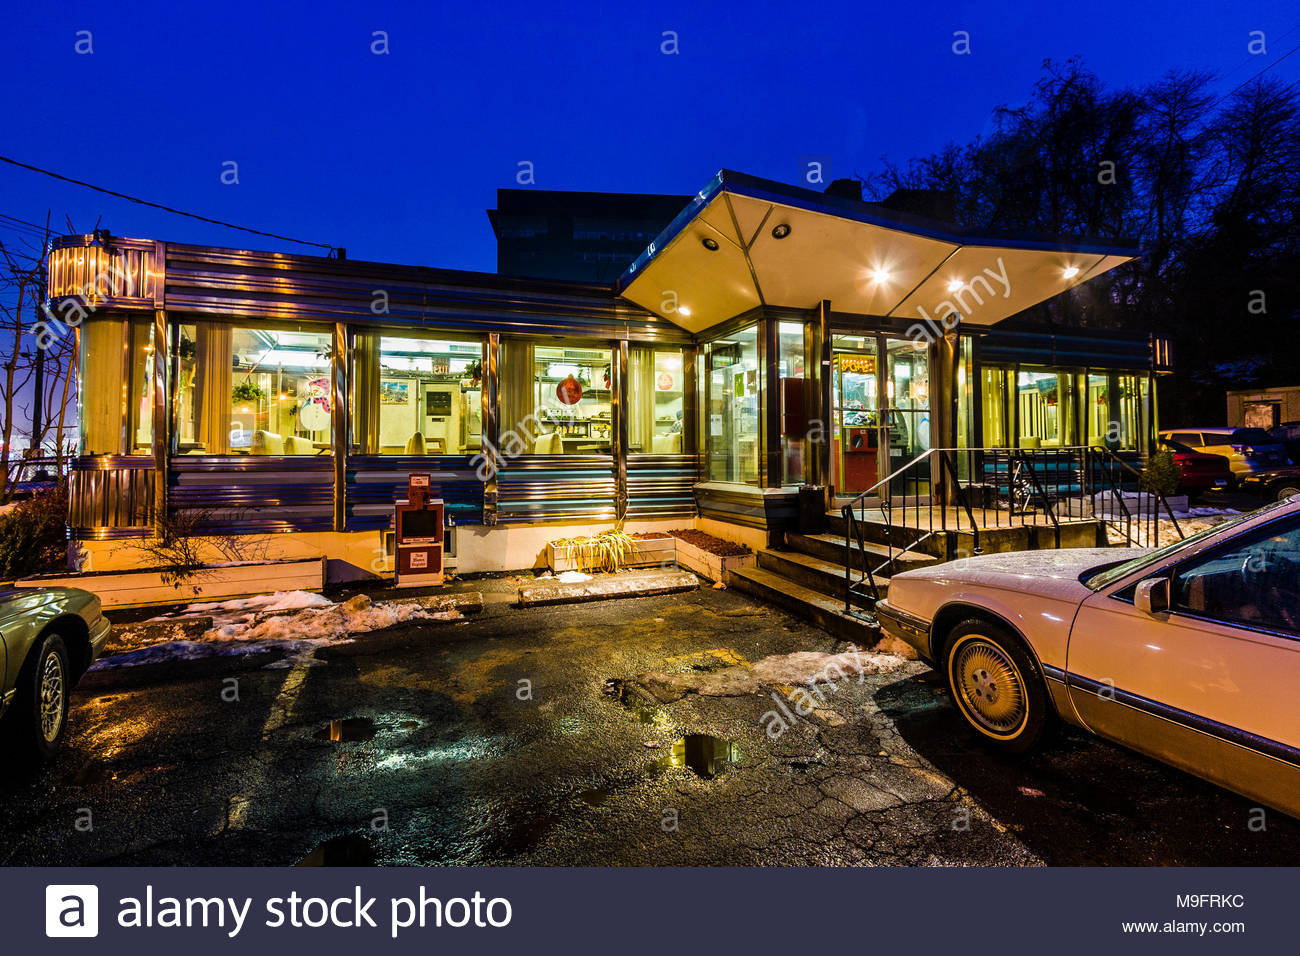 Diner Stools Stock Photos Amp Diner Stools Stock Images Alamy